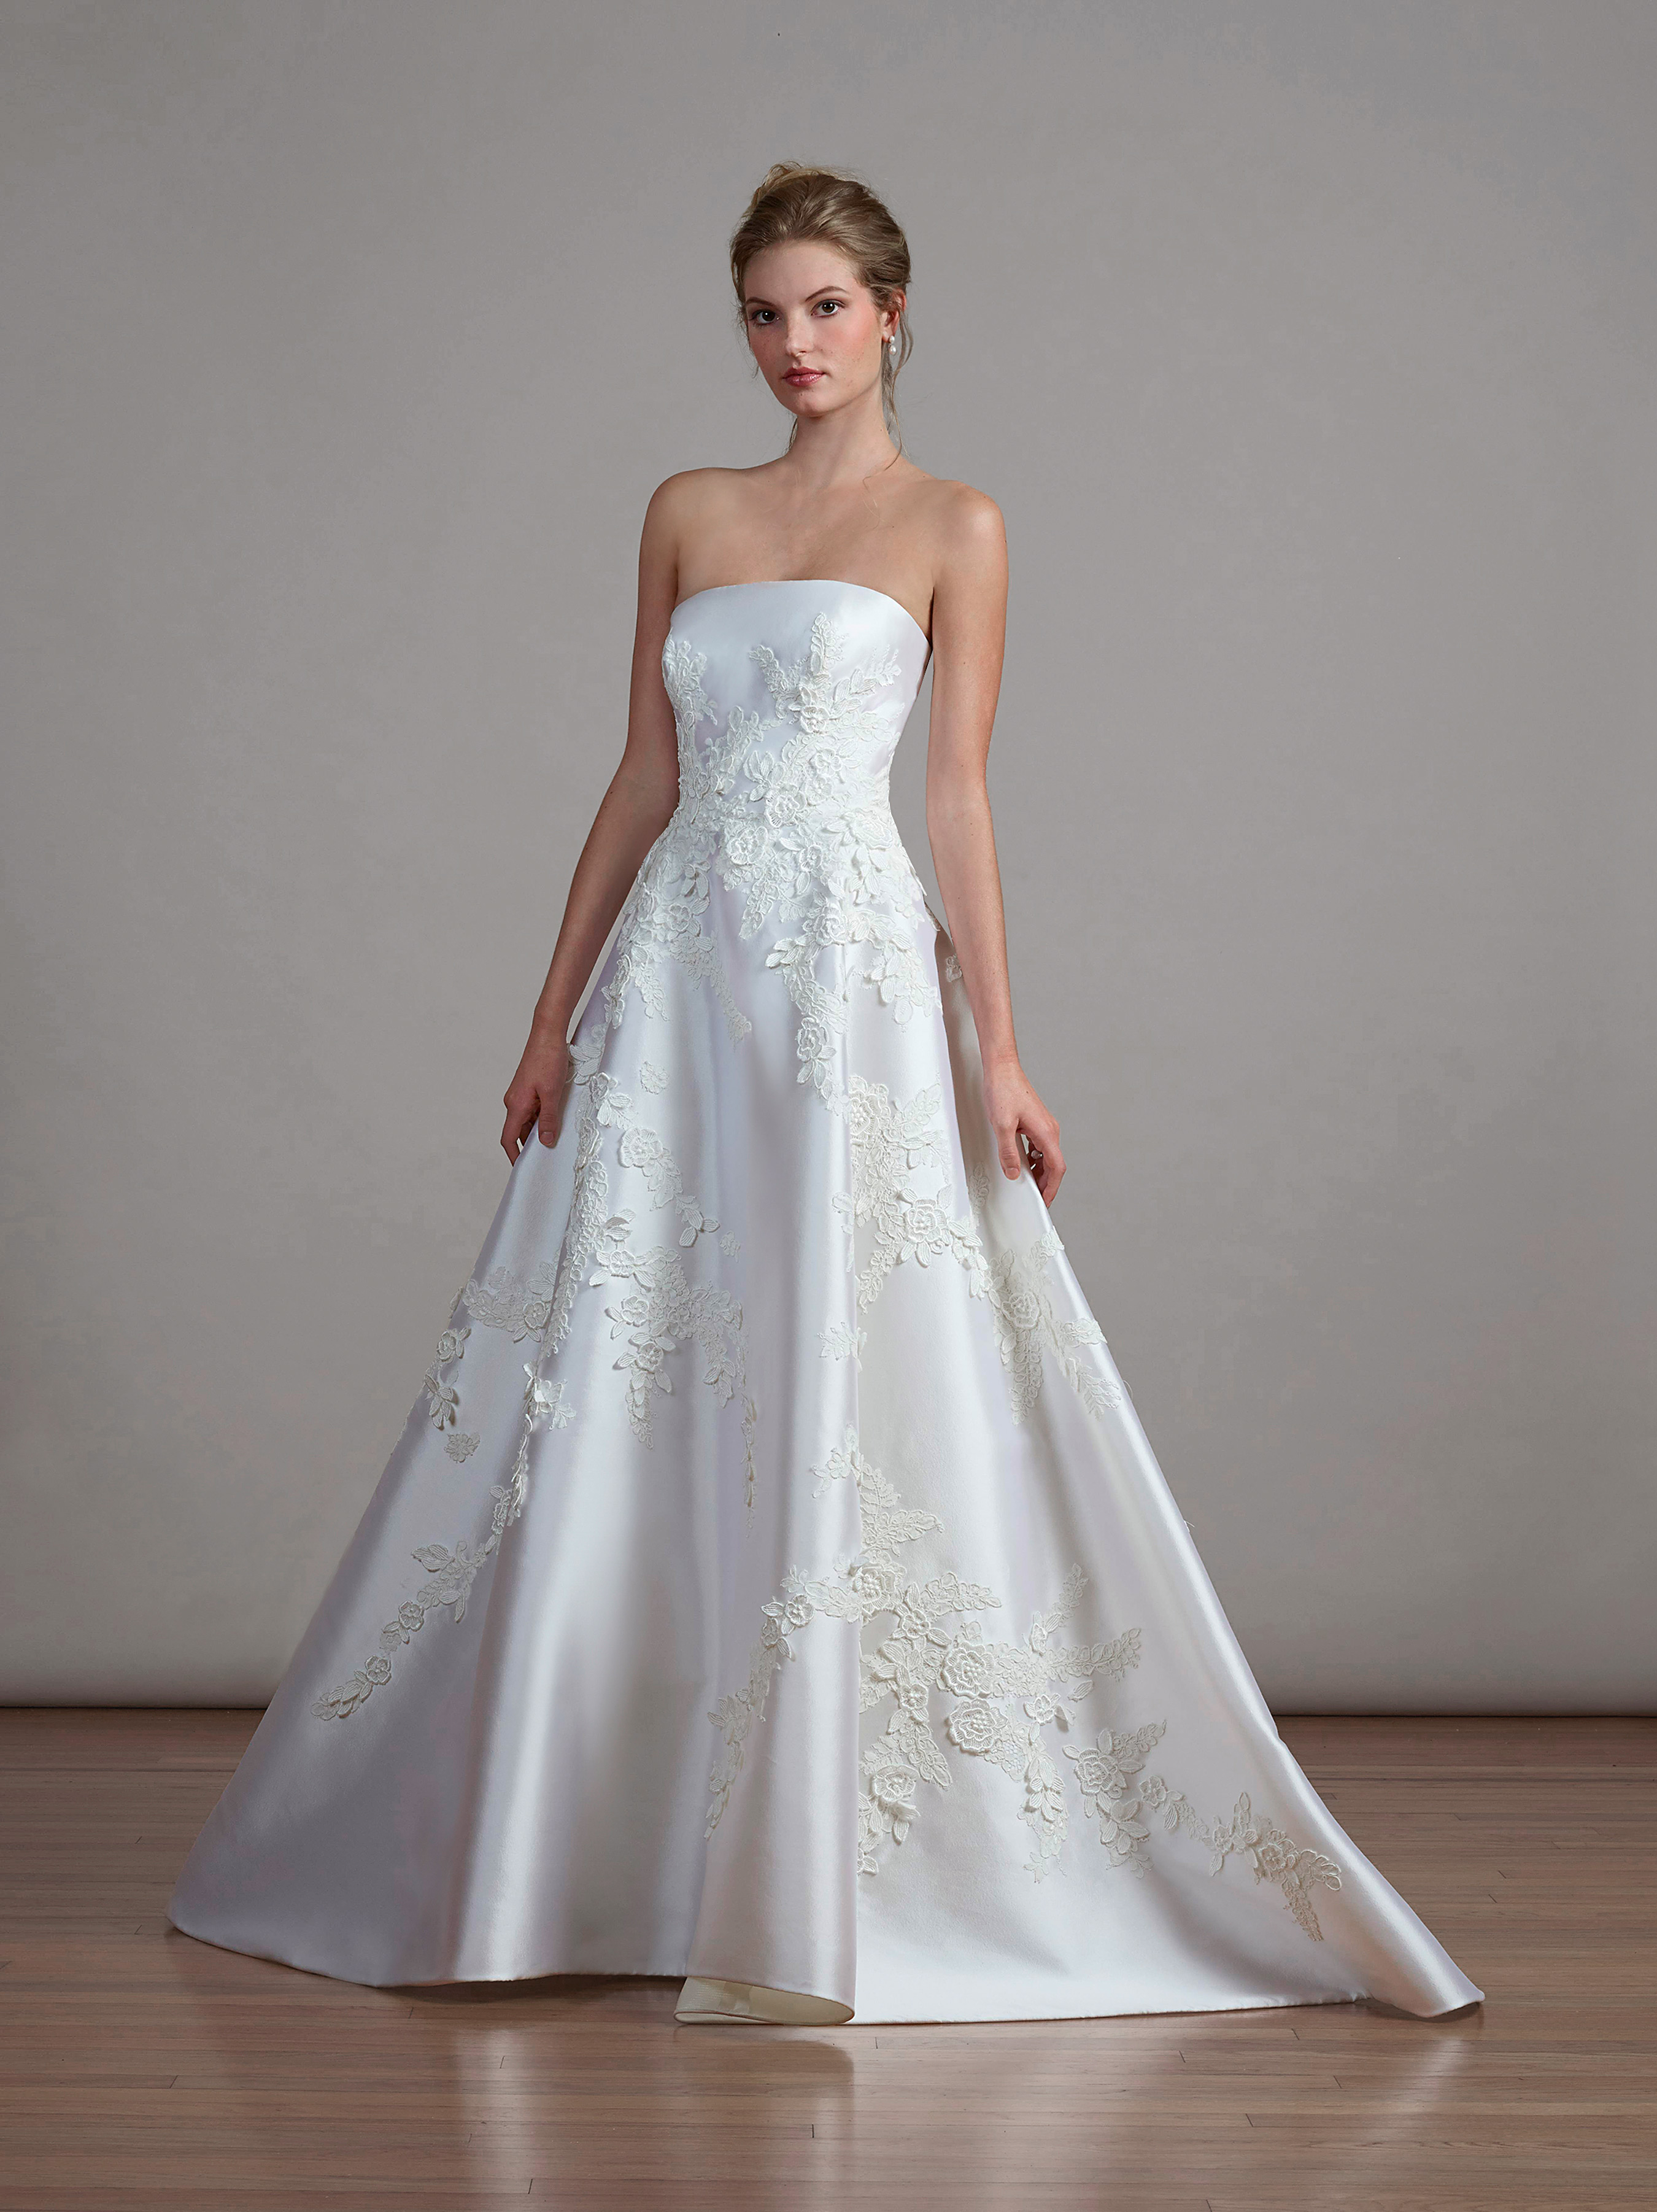 liancarlo a-line strapless wedding dress